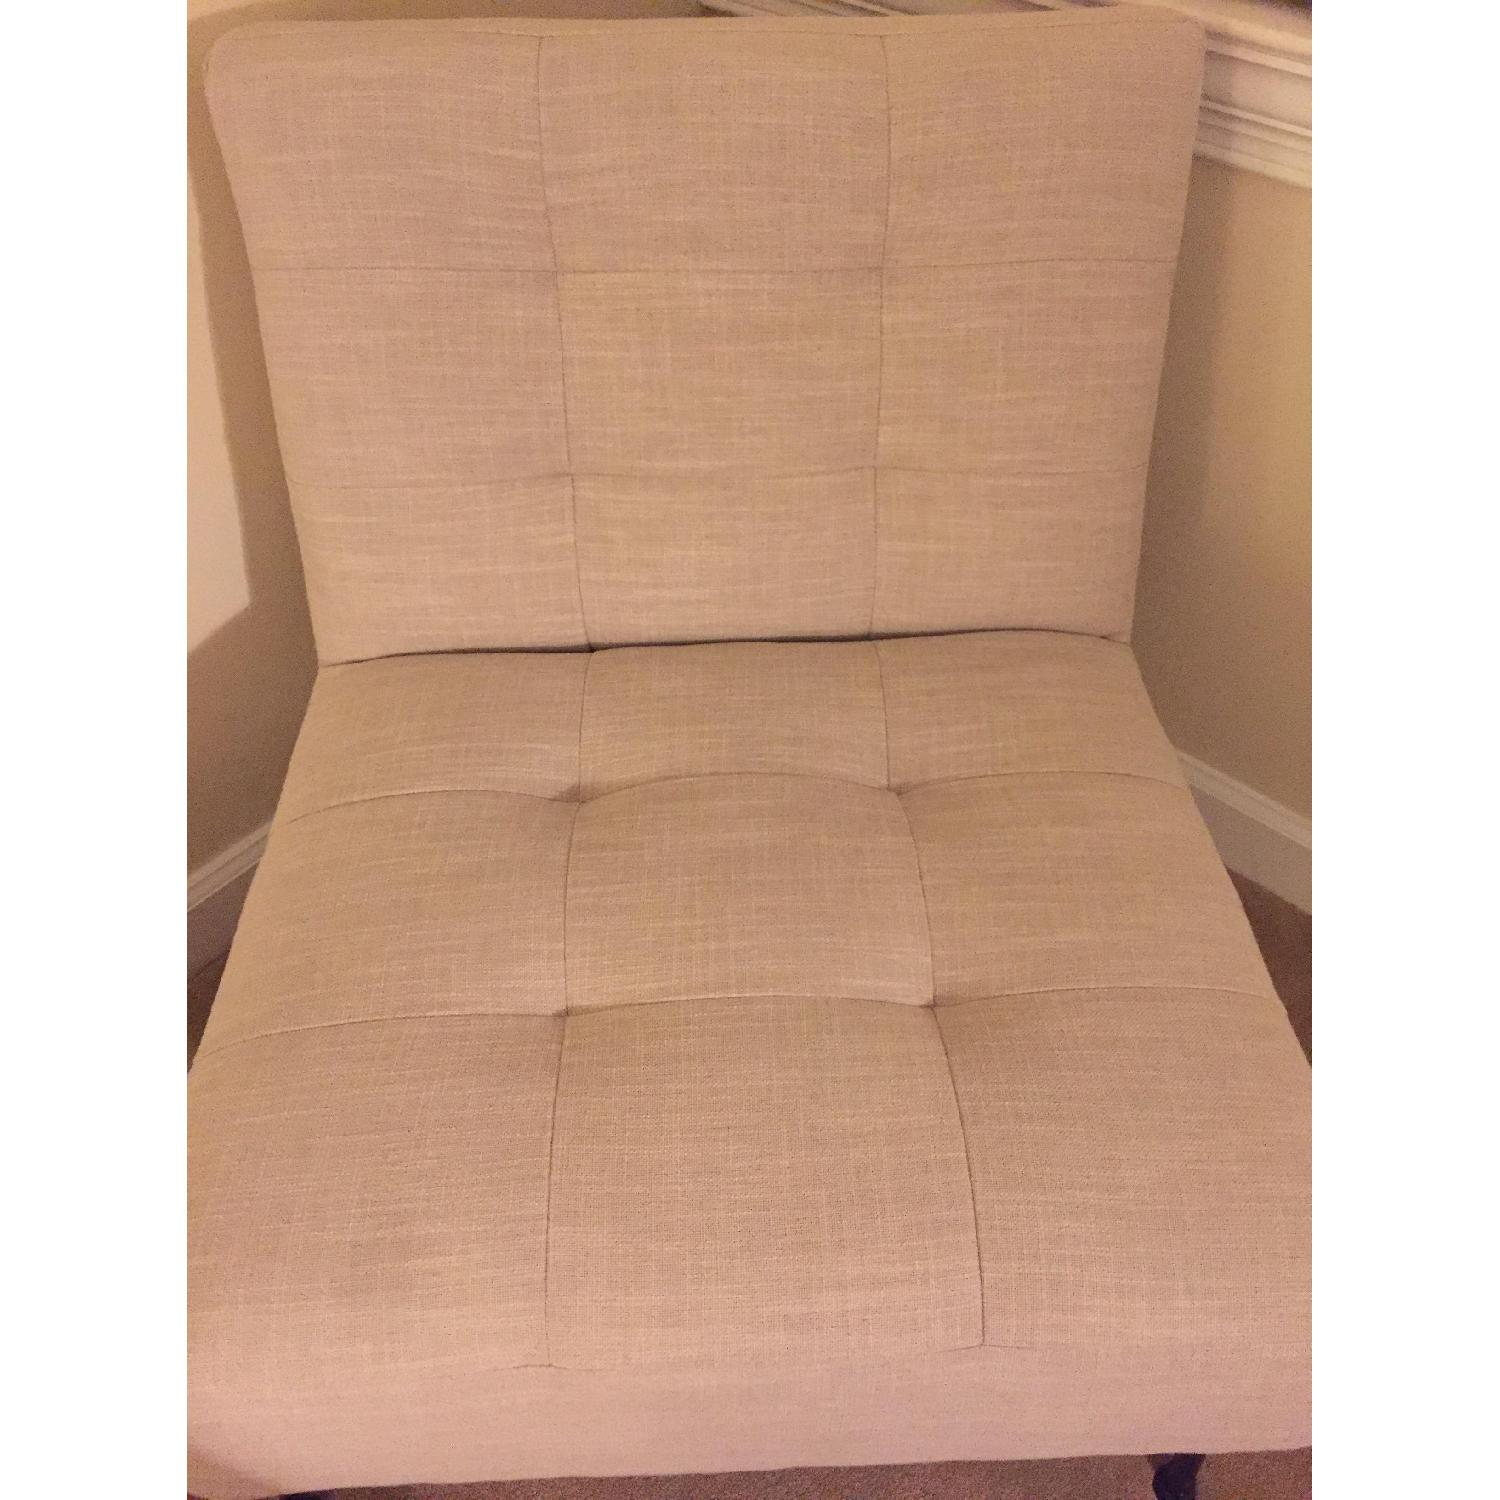 West Elm Oswald Tufted Slipper Chair - image-4